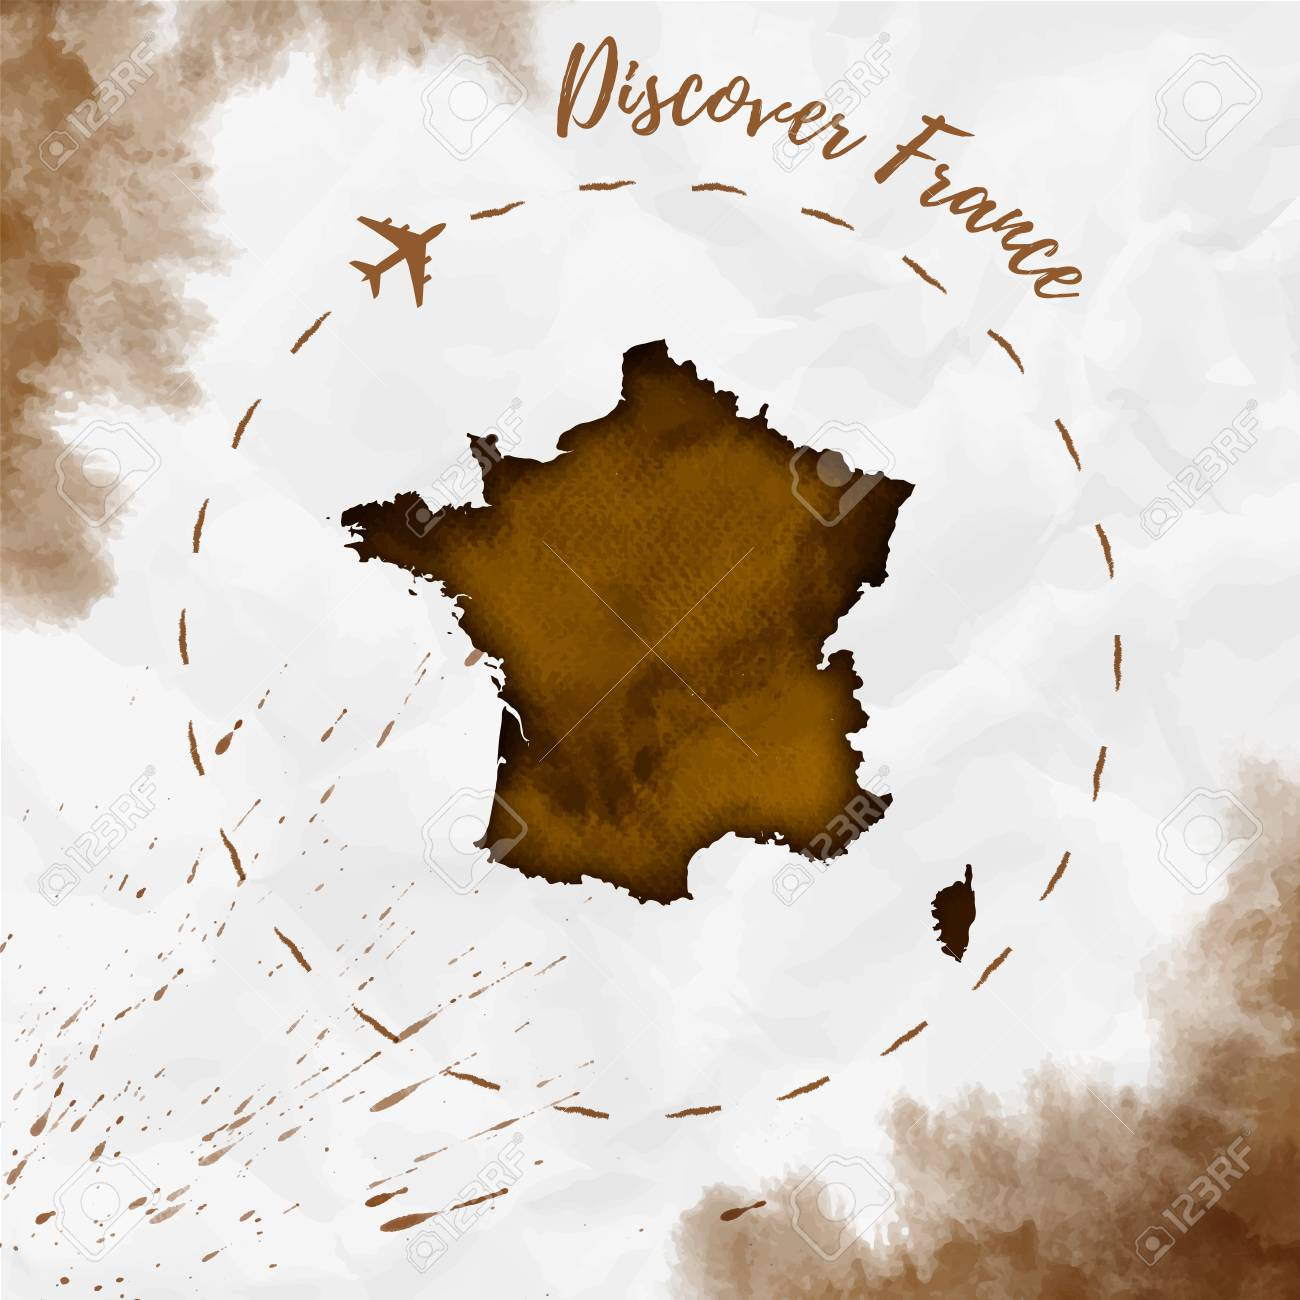 Map Of France Poster.France Map In Sepia Colors Discover France Poster With Airplane